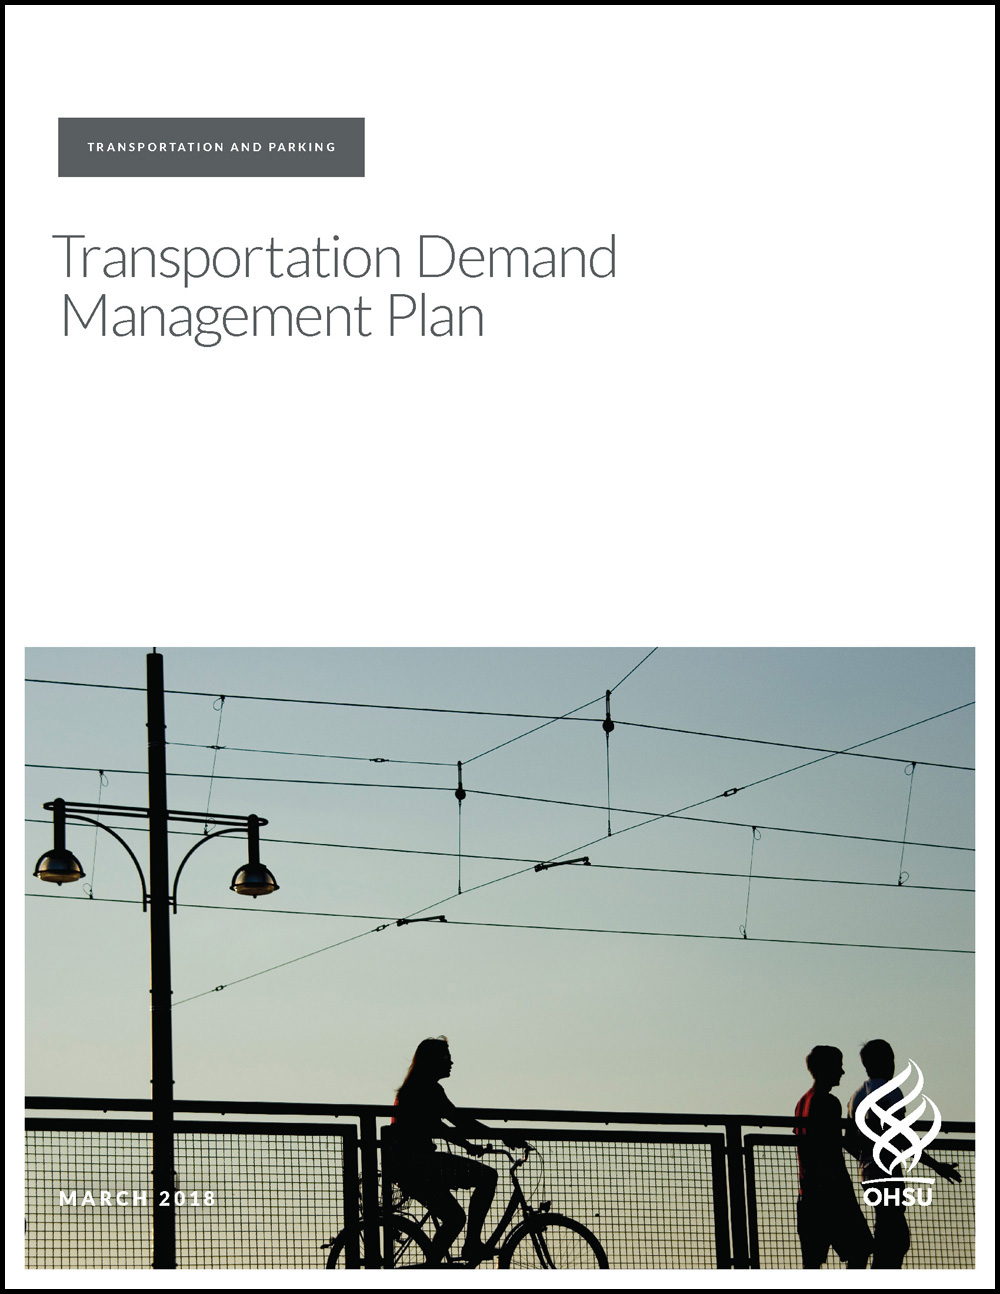 Transportation Demand Management Plan